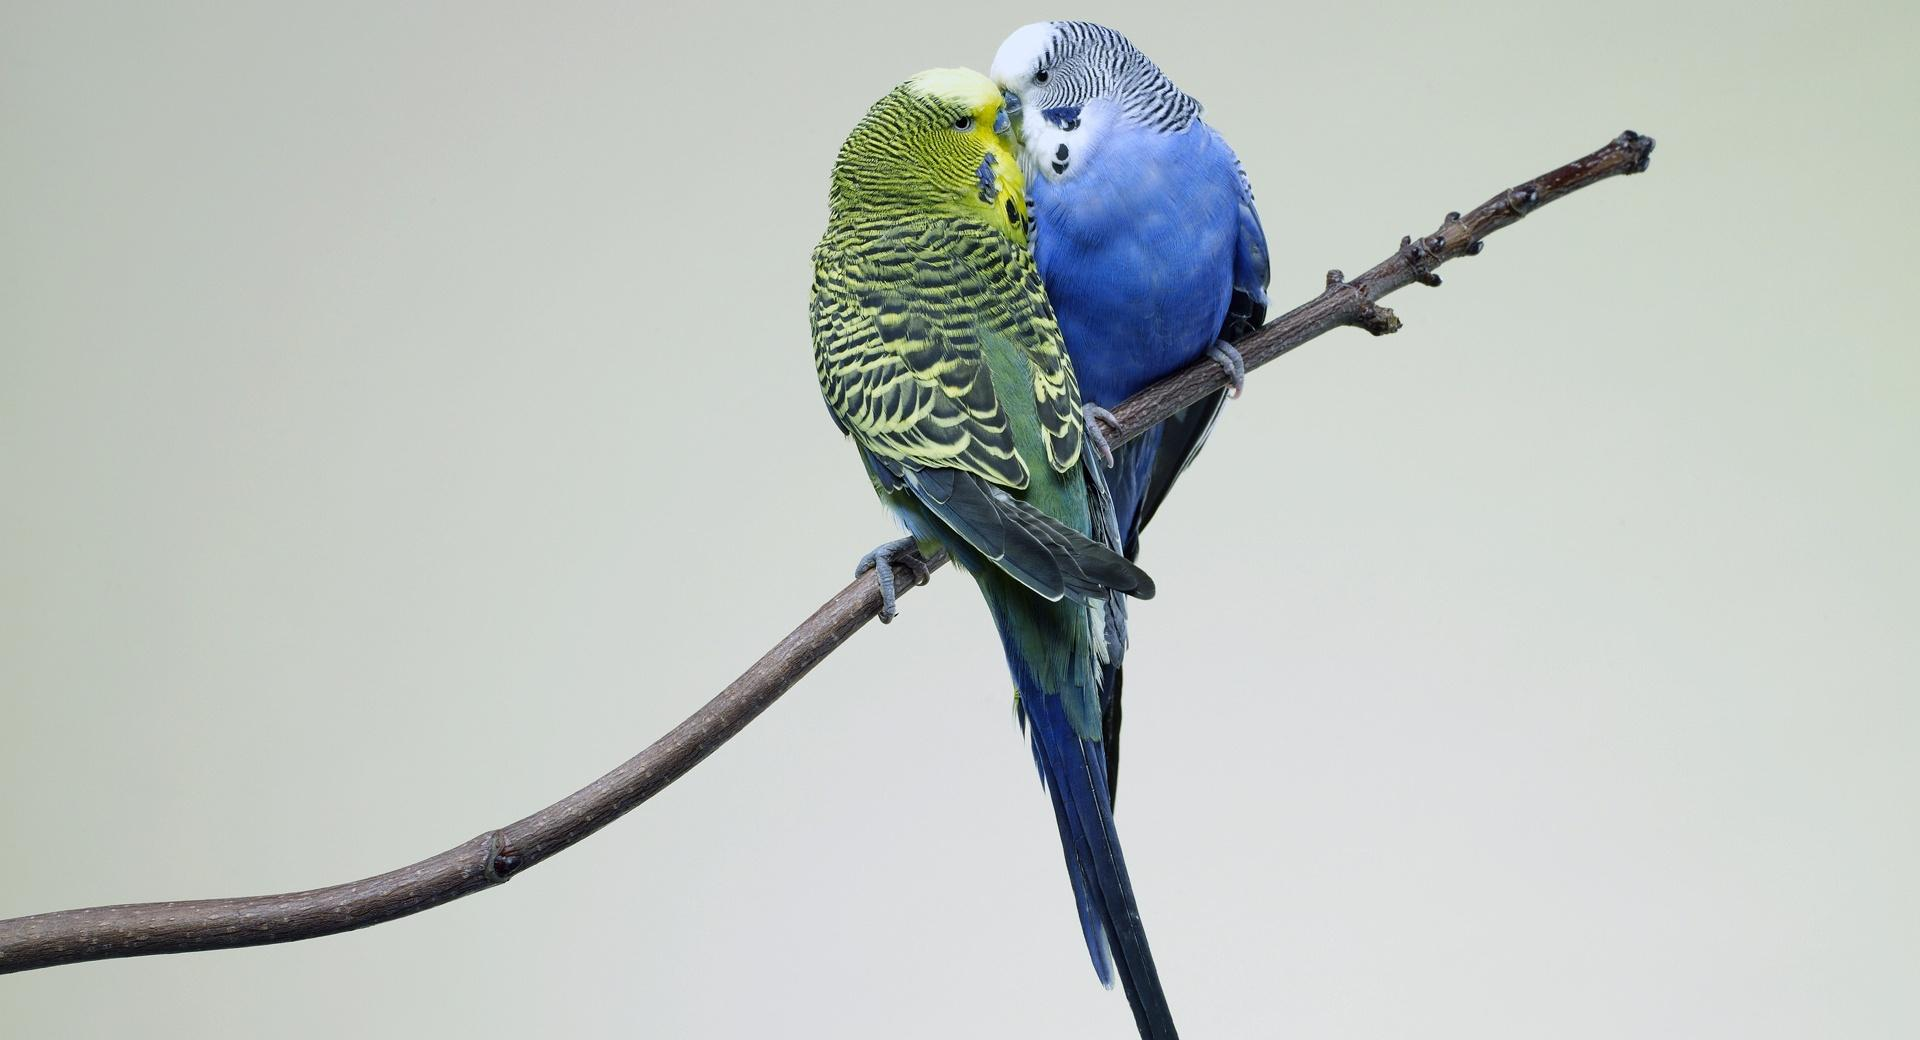 Parrots Kiss wallpapers HD quality